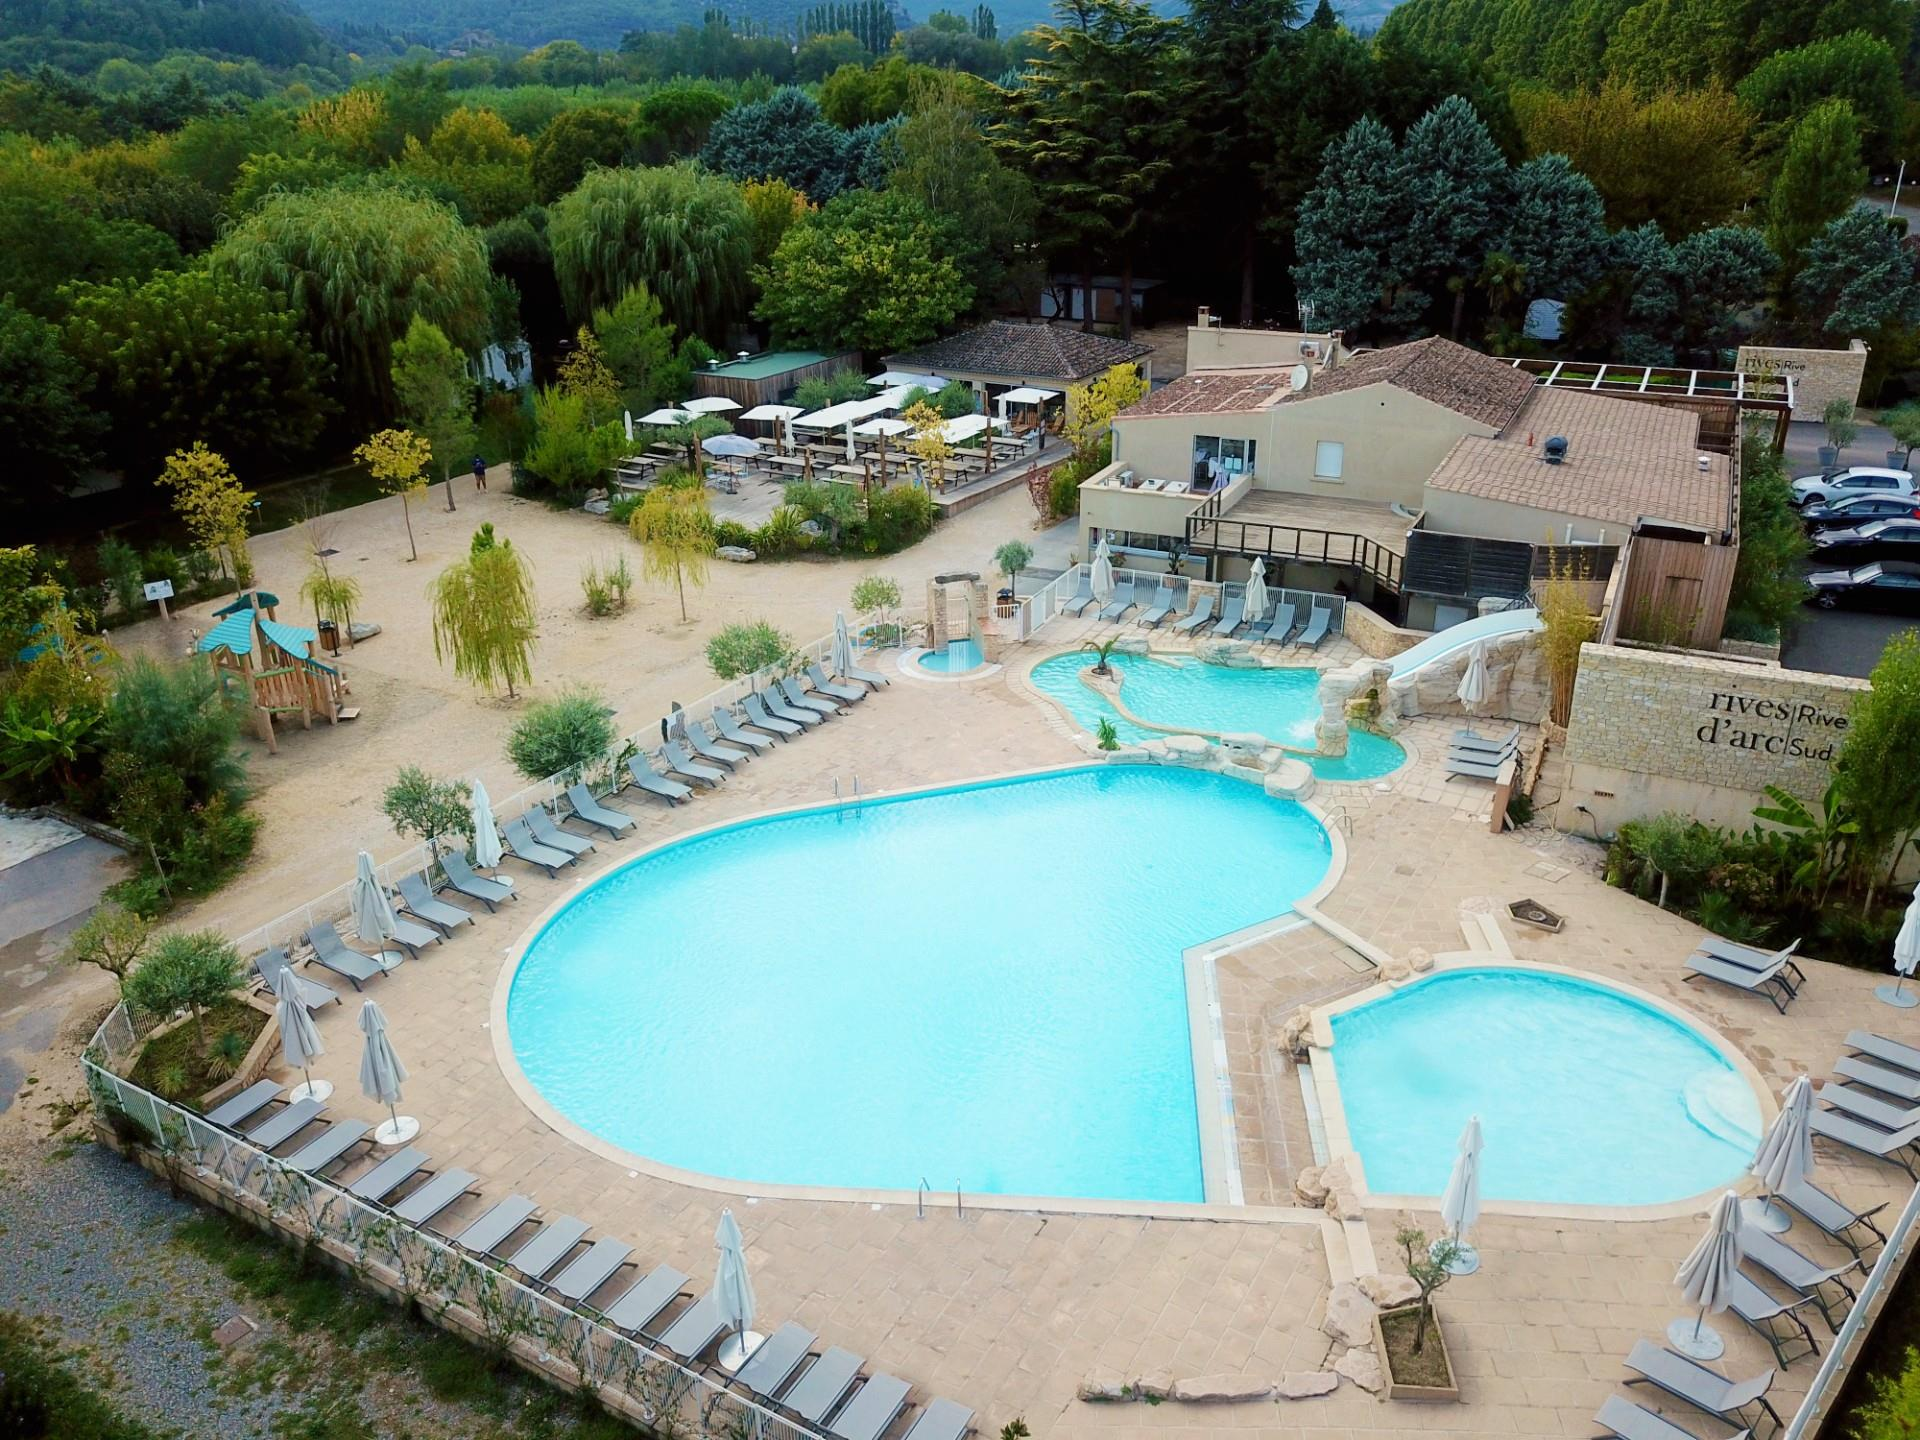 Baignade Camping Rives D'arc - Vallon Pont D'arc